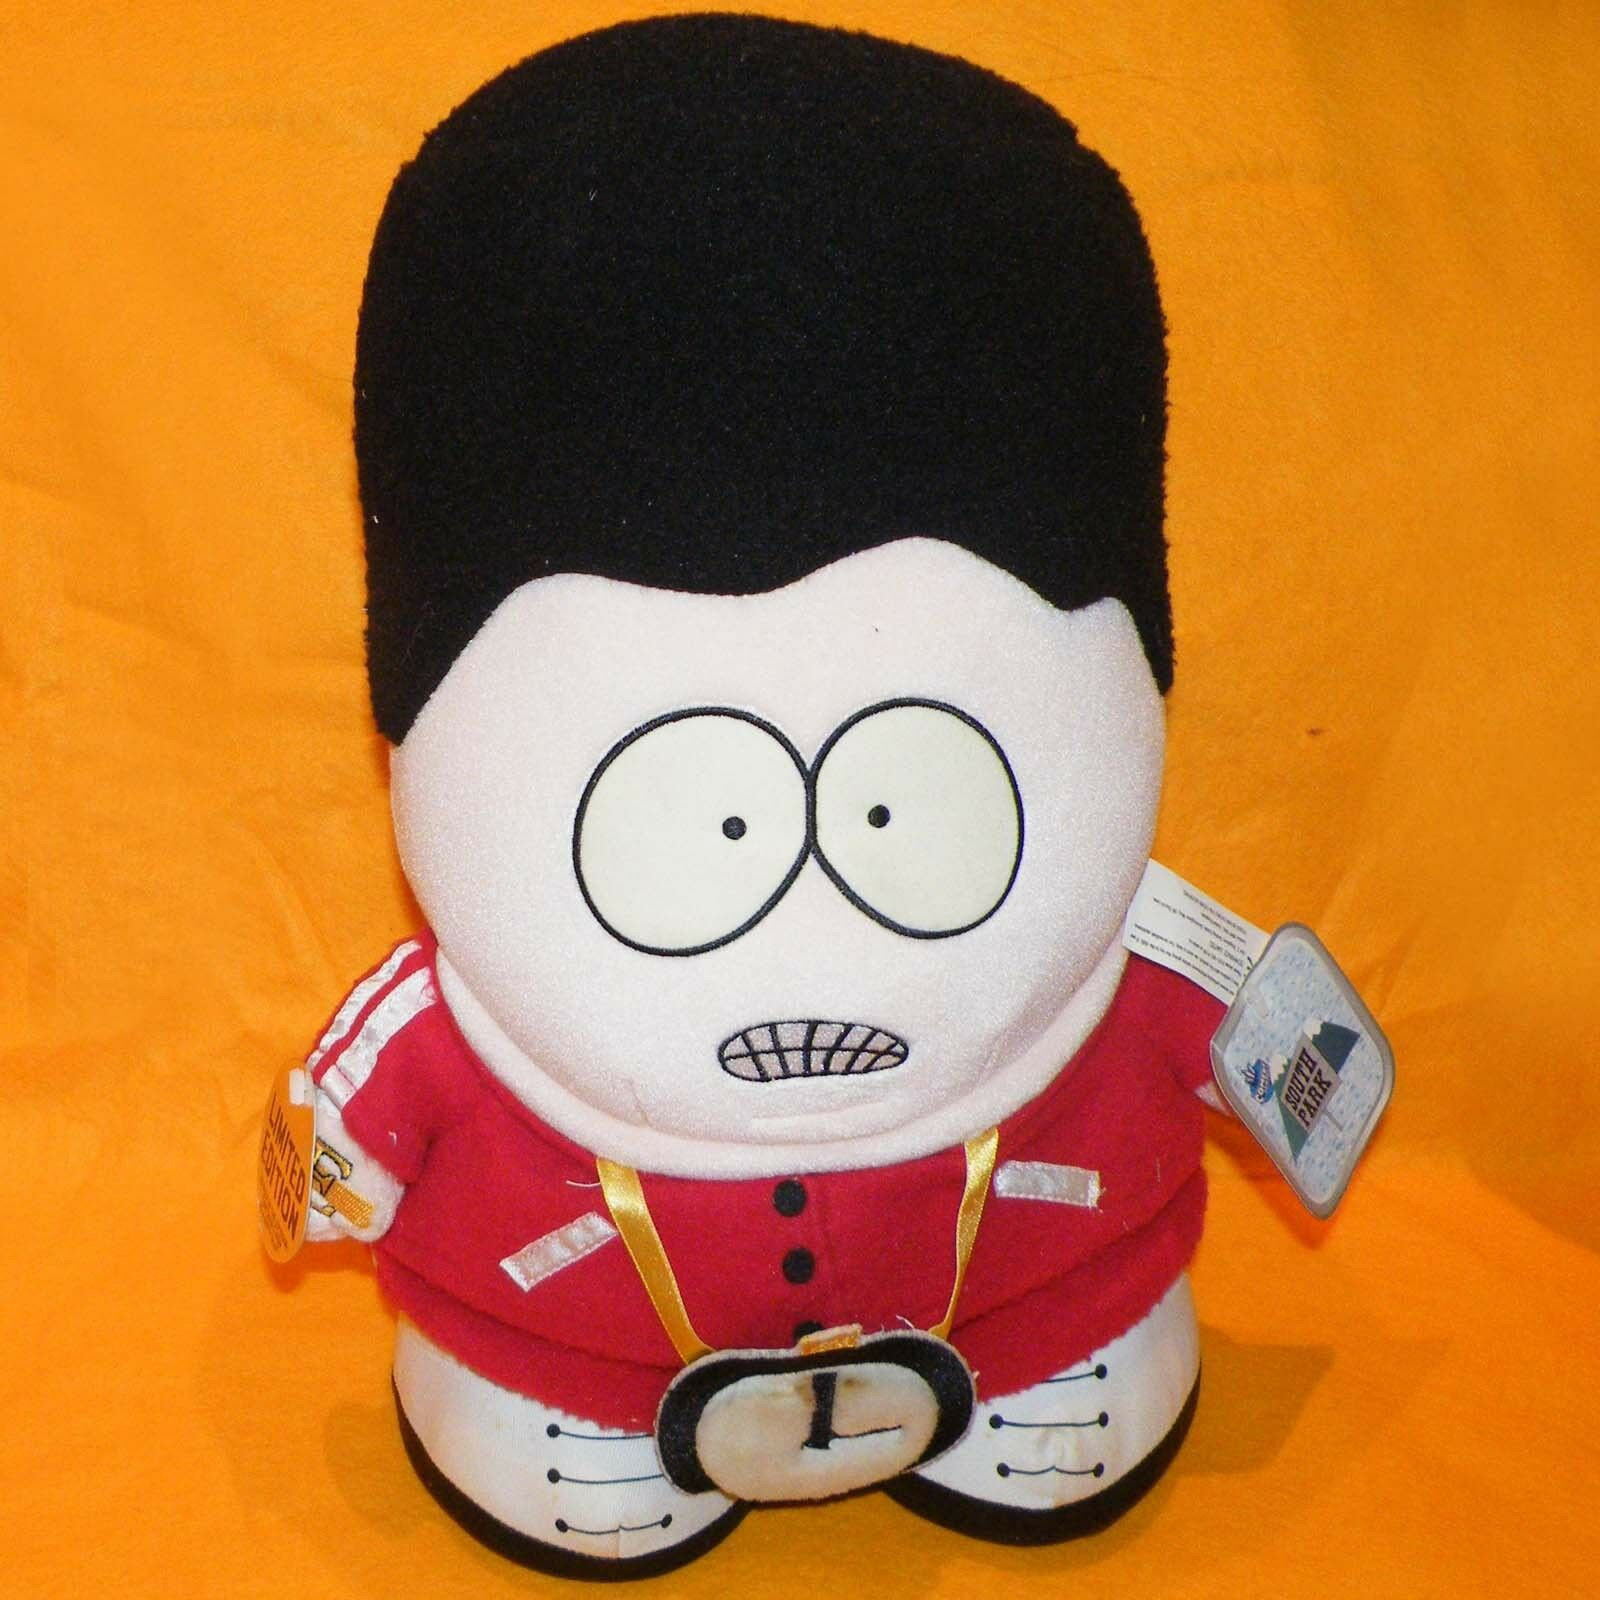 1998 COMEDY CENTRAL SOUTH PARK 15  HIP HOP ERIC CARTMAN PLUSH SOFT TOY RARE LTD